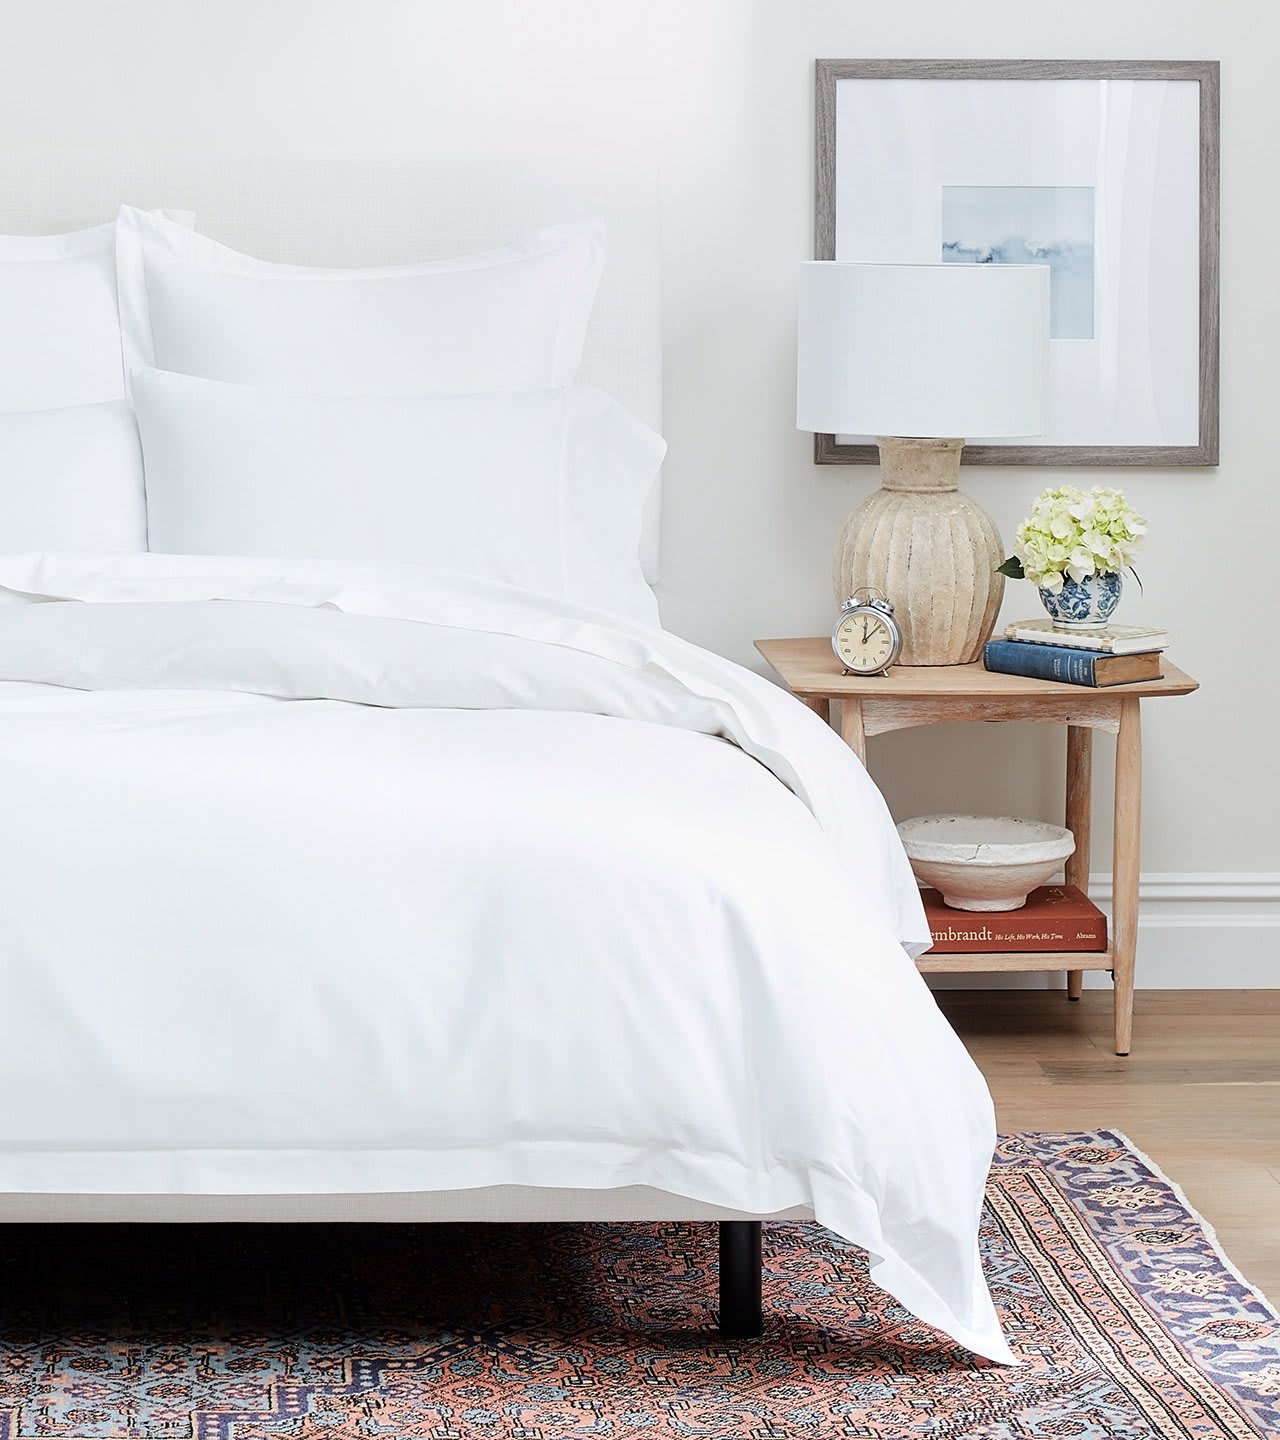 Image of a bed made with white bed sheets